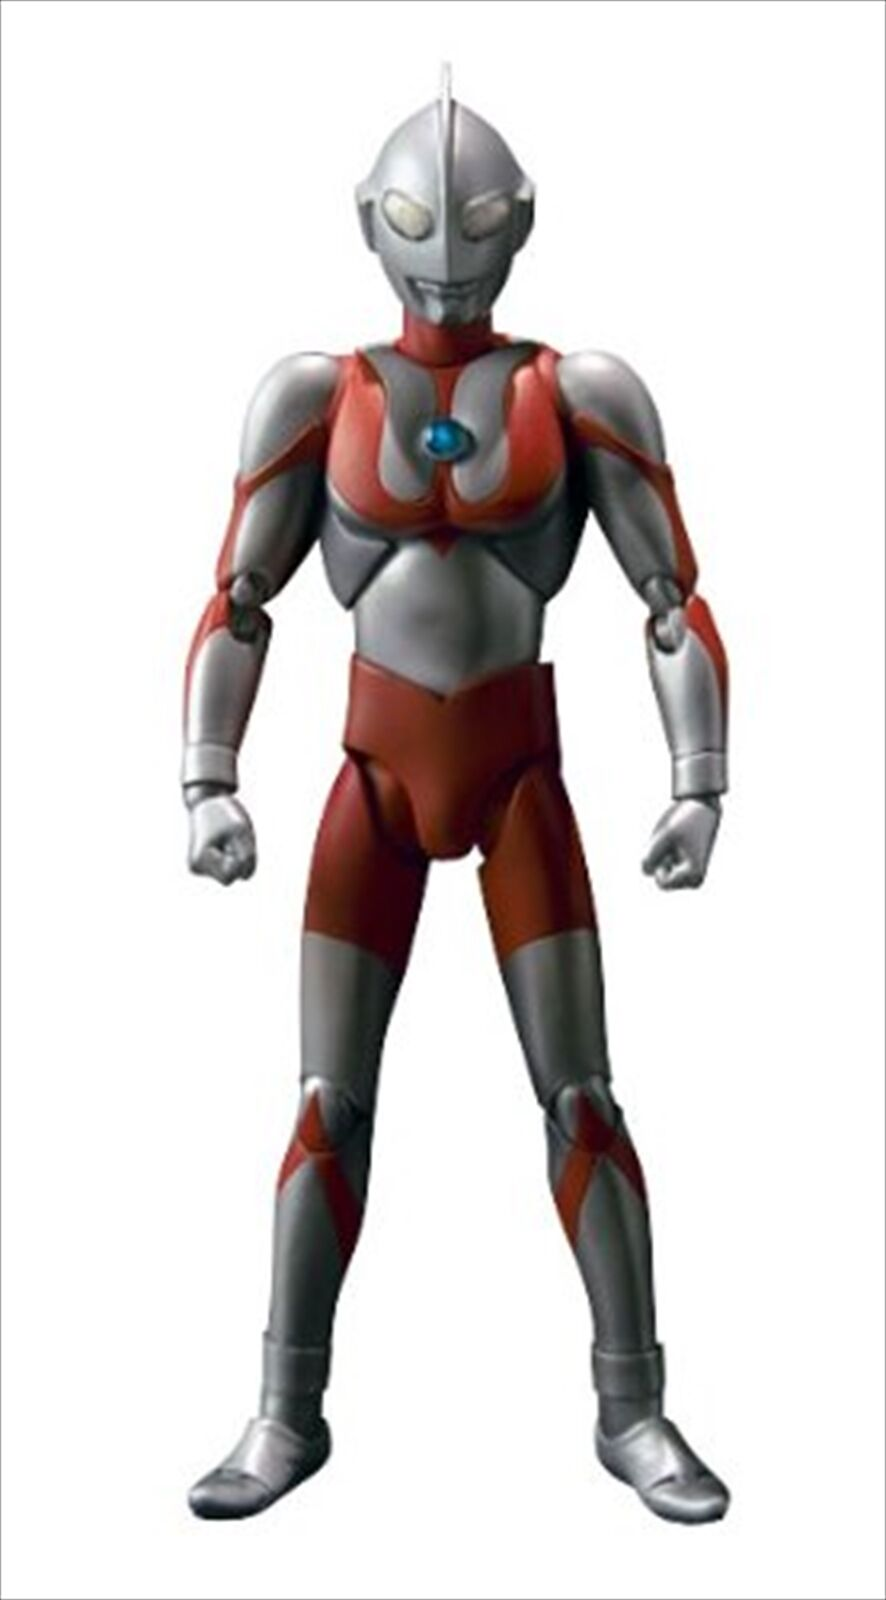 Bandai ULTRA-ACT Ultraman Action Figure